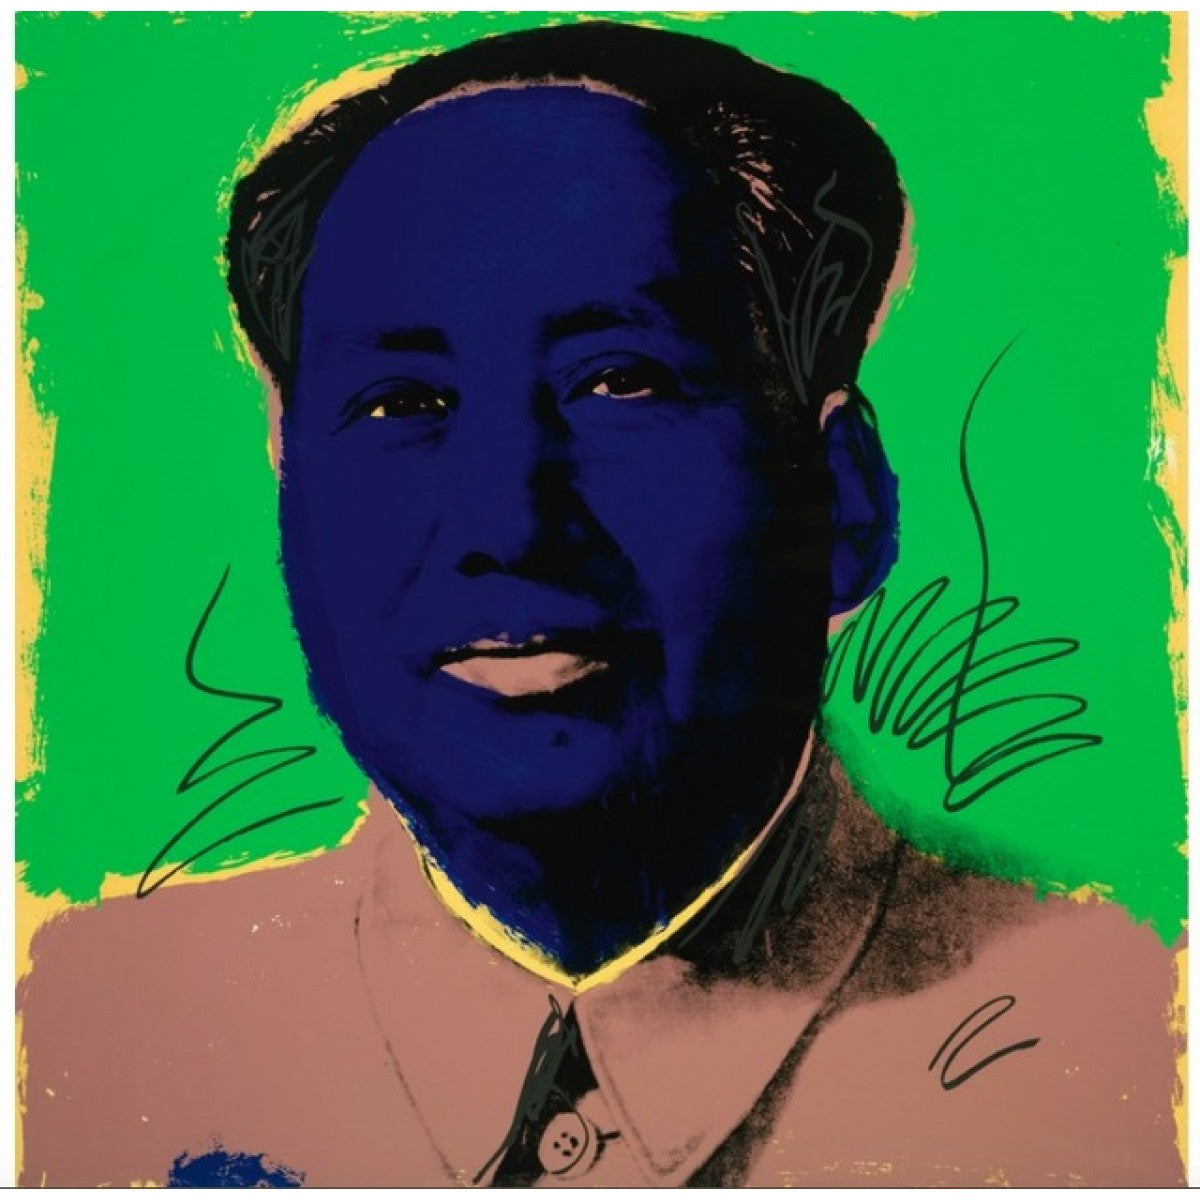 Mao (F. & S. ll.90), 1972  by Andy Warhol (1928-1987)